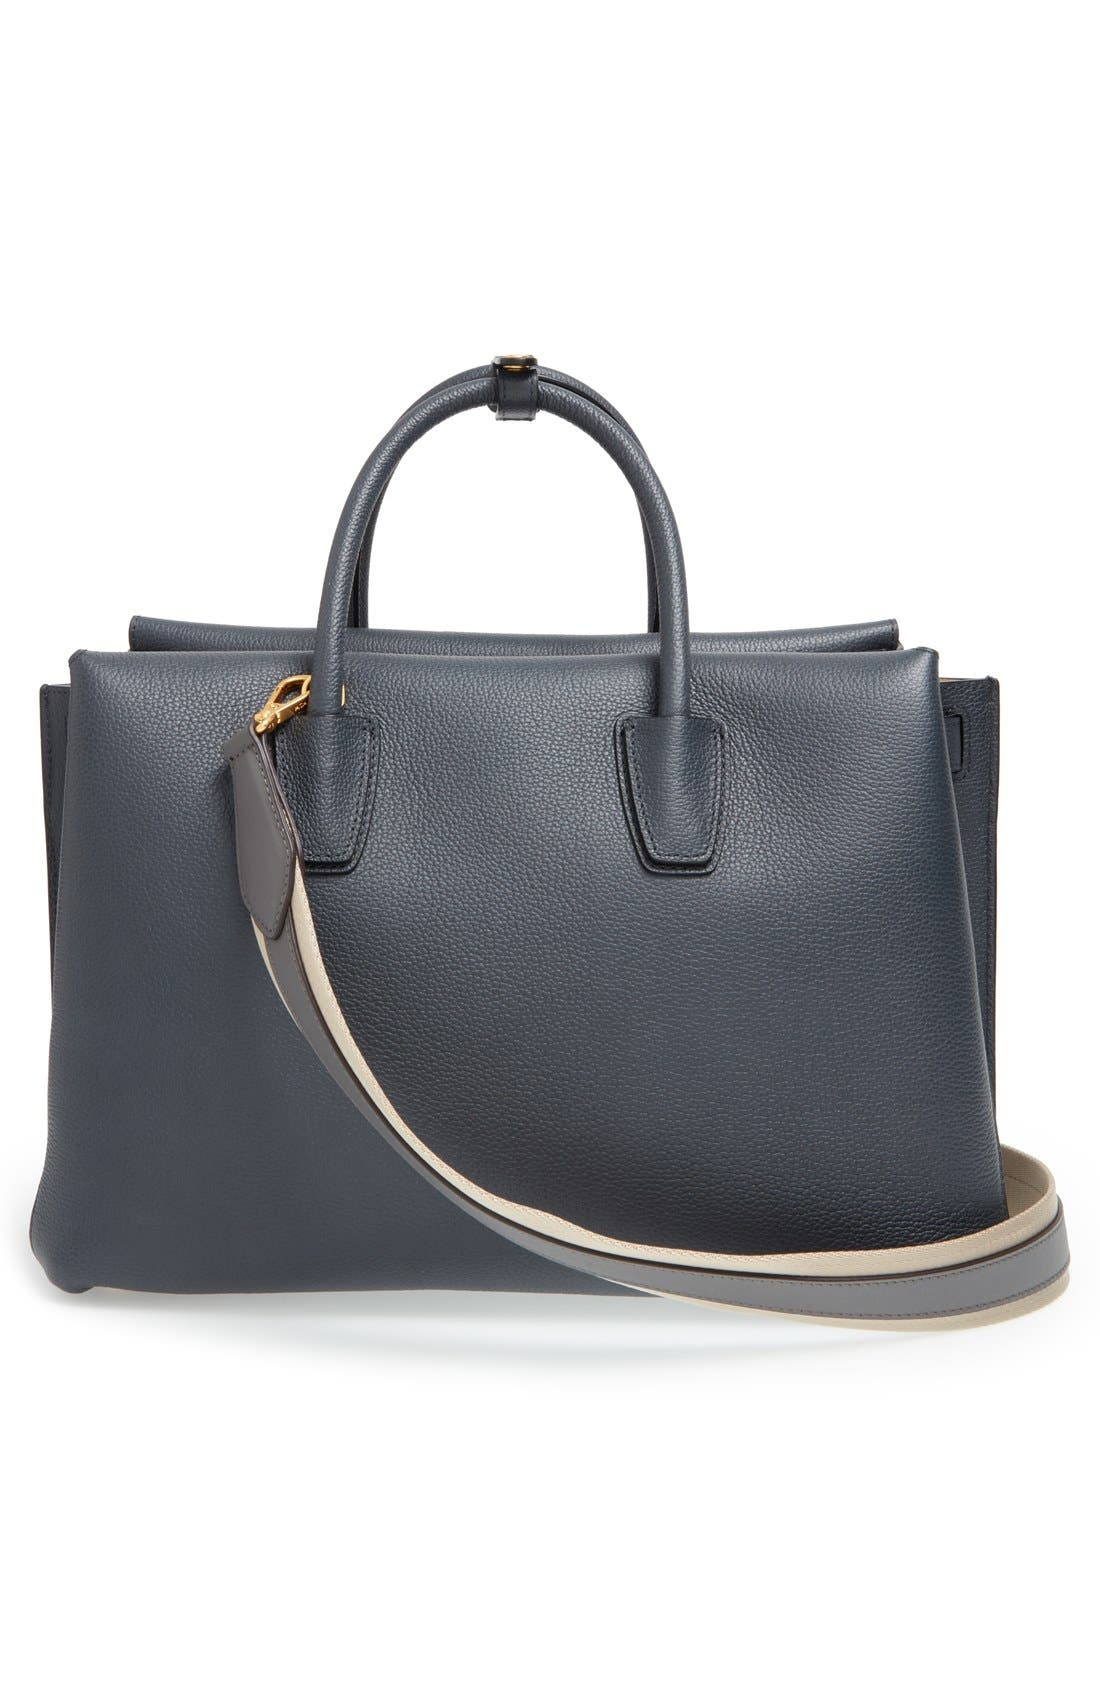 'Large Milla' Leather Tote,                             Alternate thumbnail 5, color,                             020